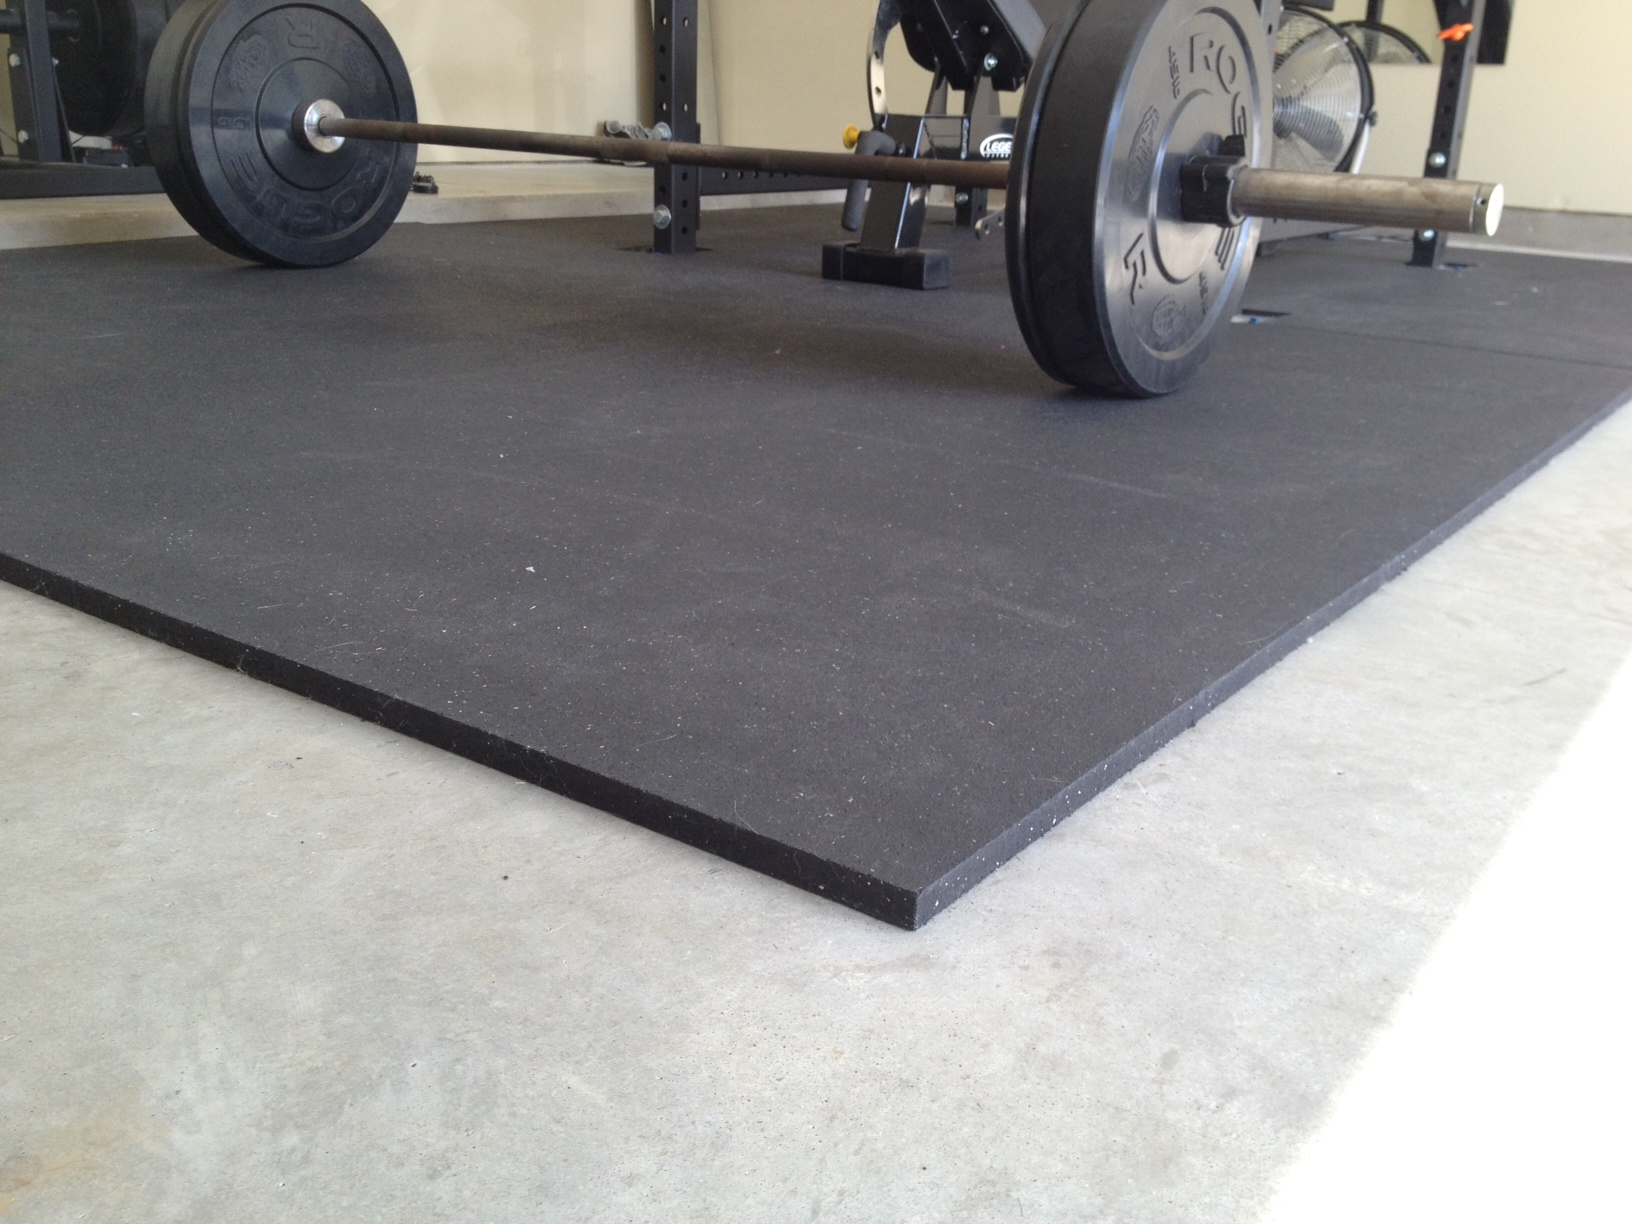 Rubber floor mats cheap - Rubber Gym Mats For My Garage Gym Flooring